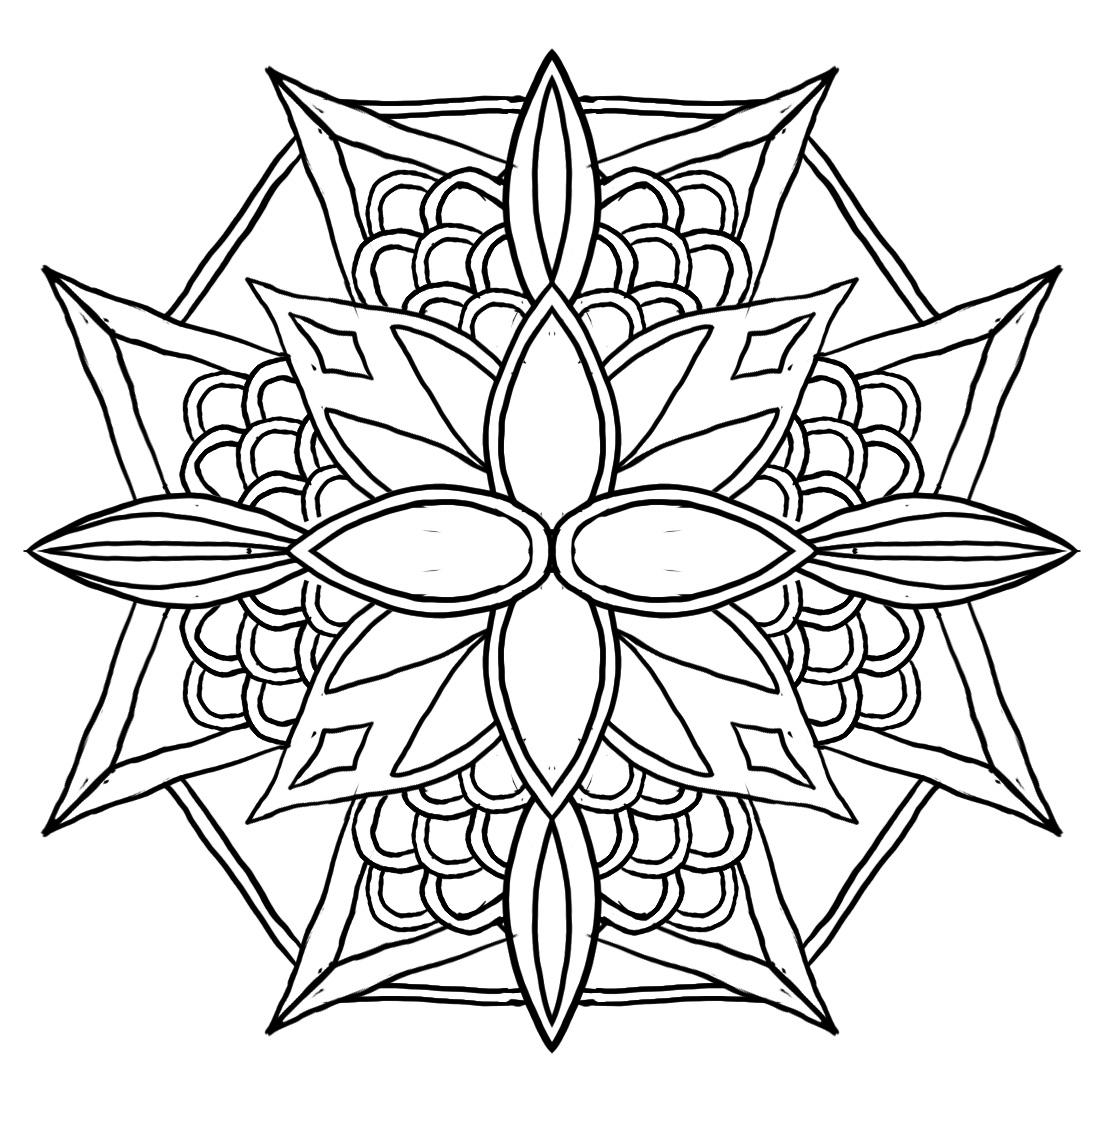 drawing for geometric design skillshare projects